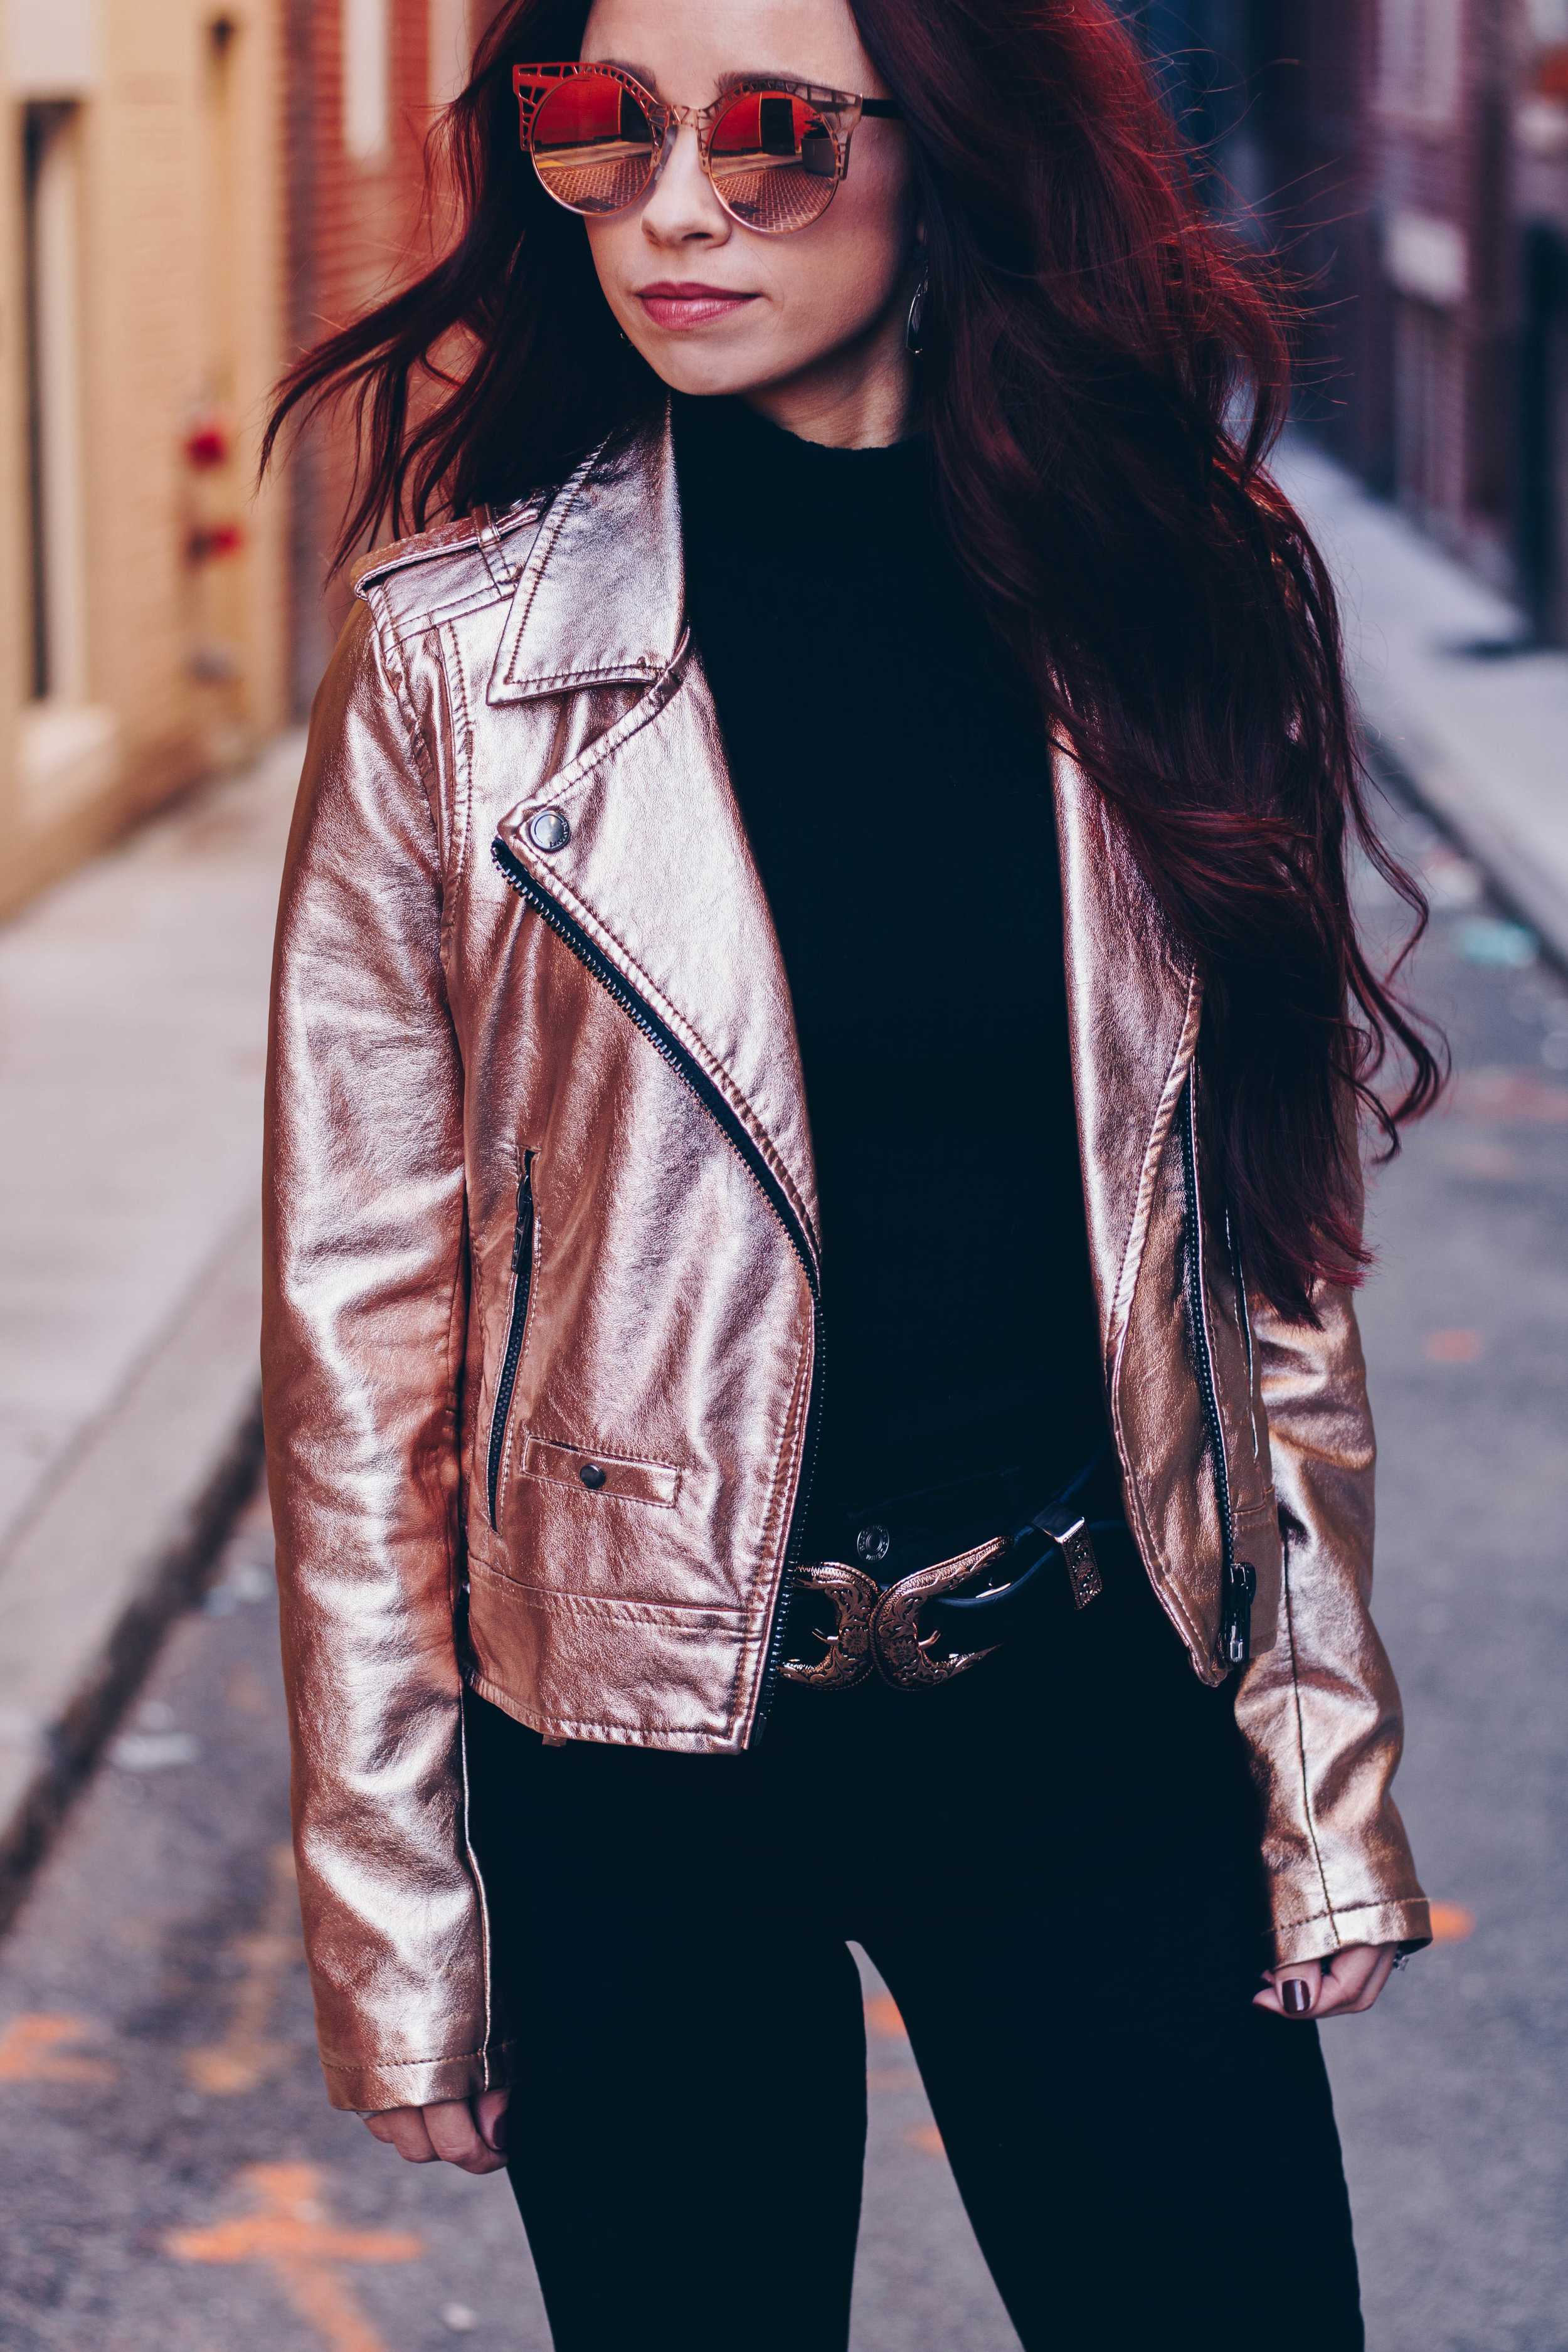 A Tough Decision: My Recent Career Change by Indianapolis fashion blogger Trendy in Indy